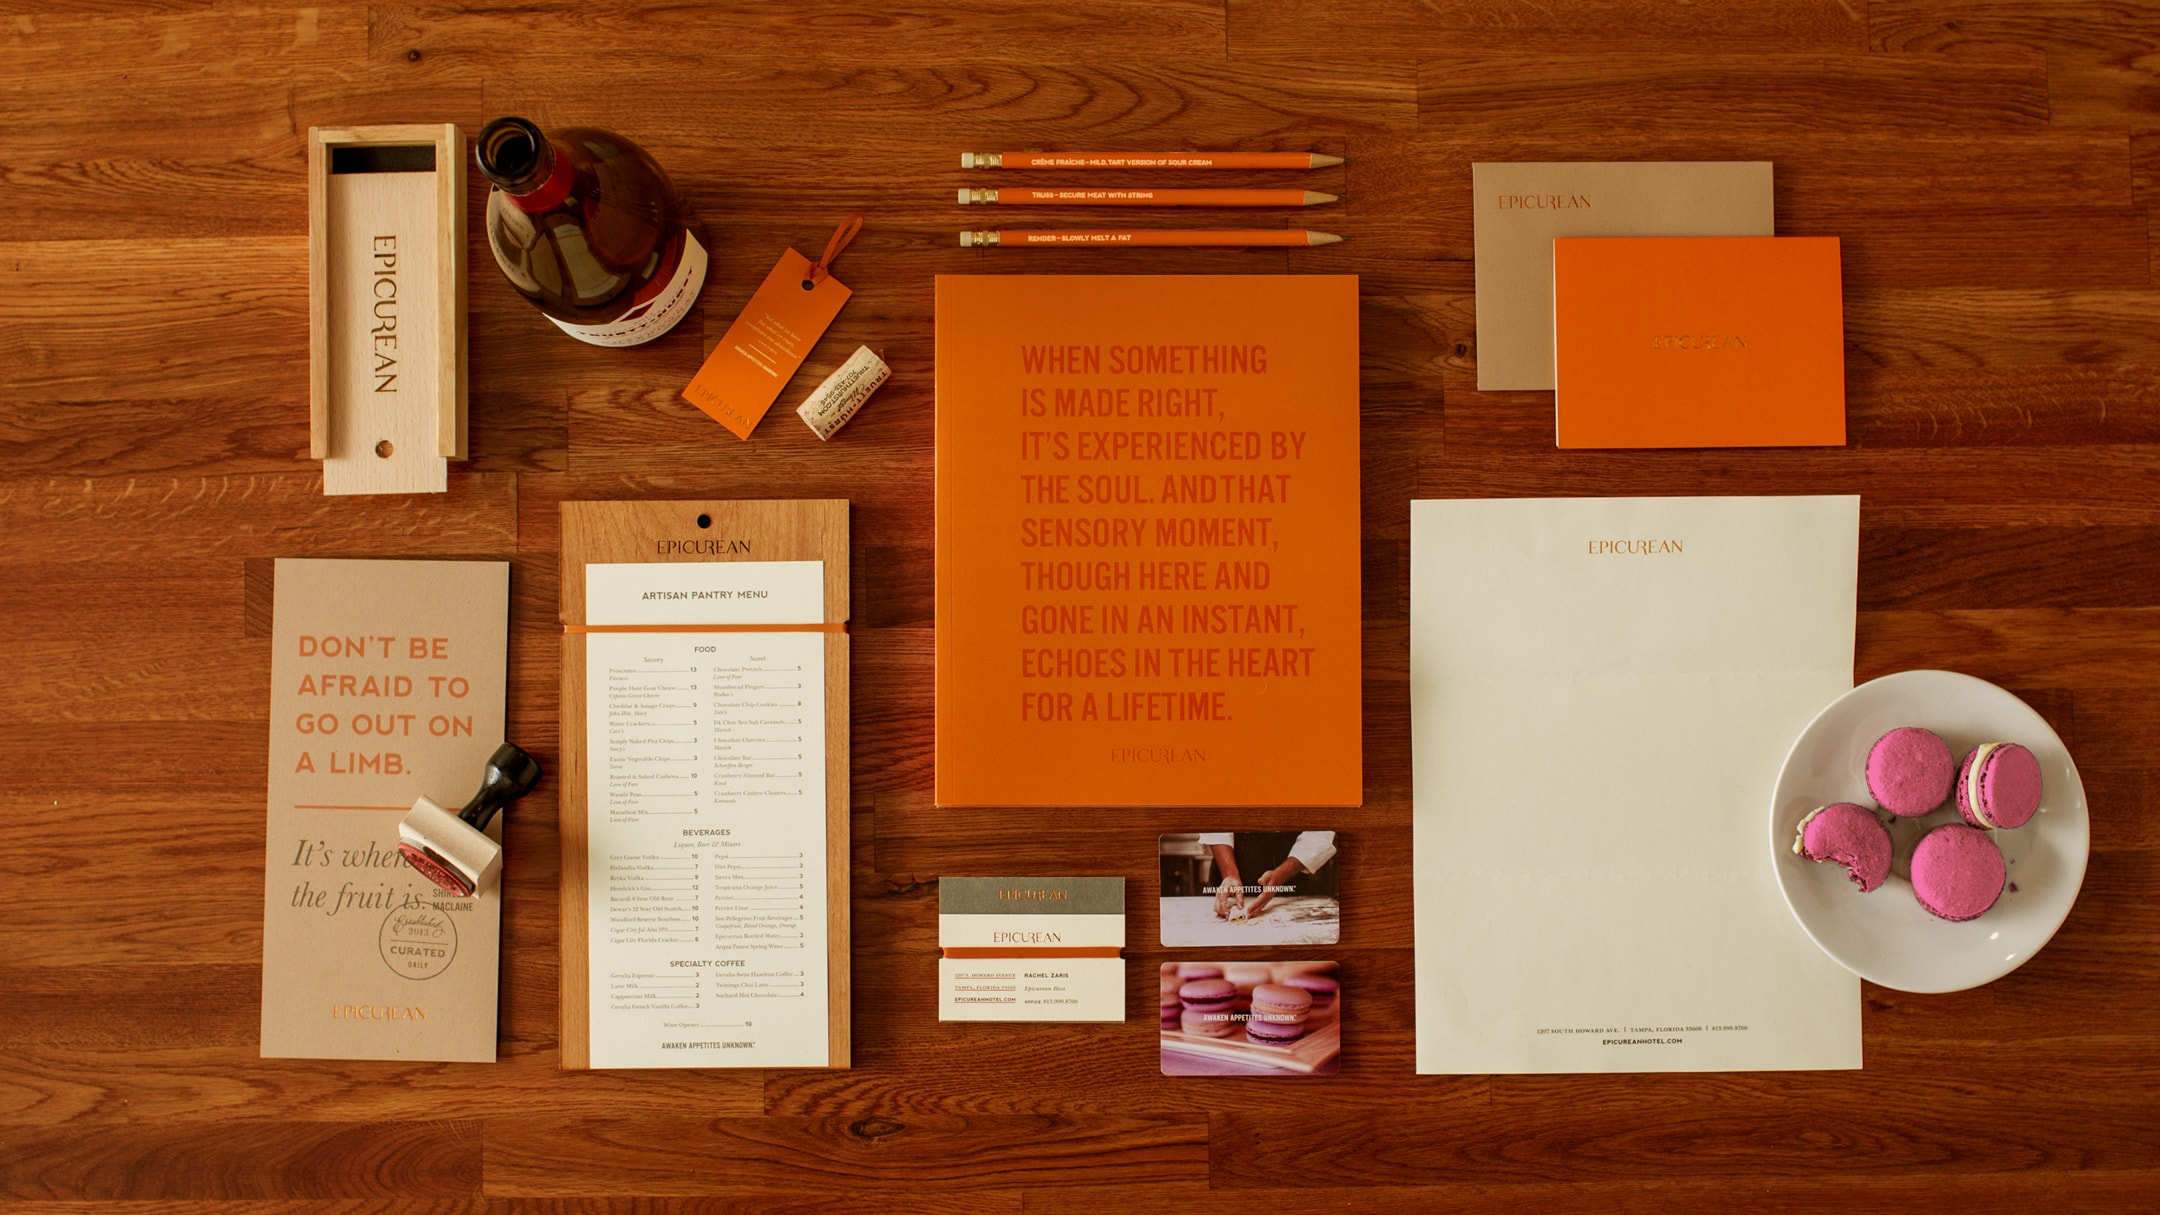 Epicurean Hotel branded collateral including menu and office supplies